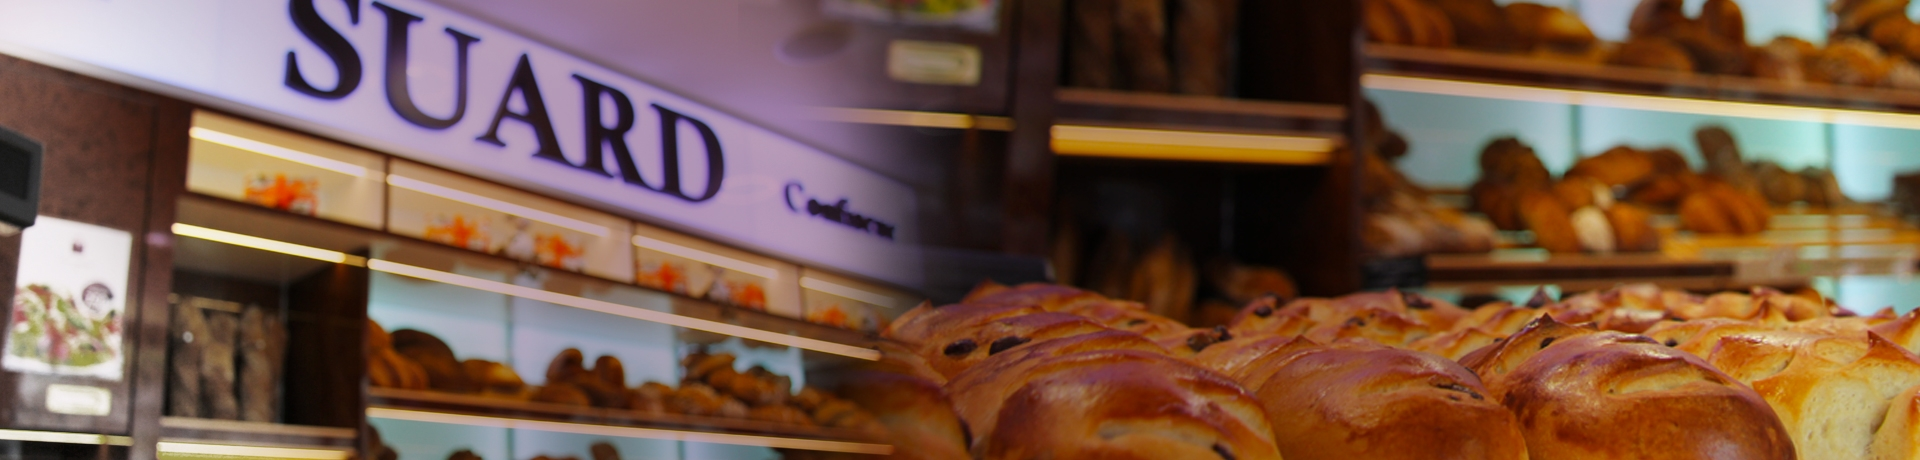 boulangerie fribourg